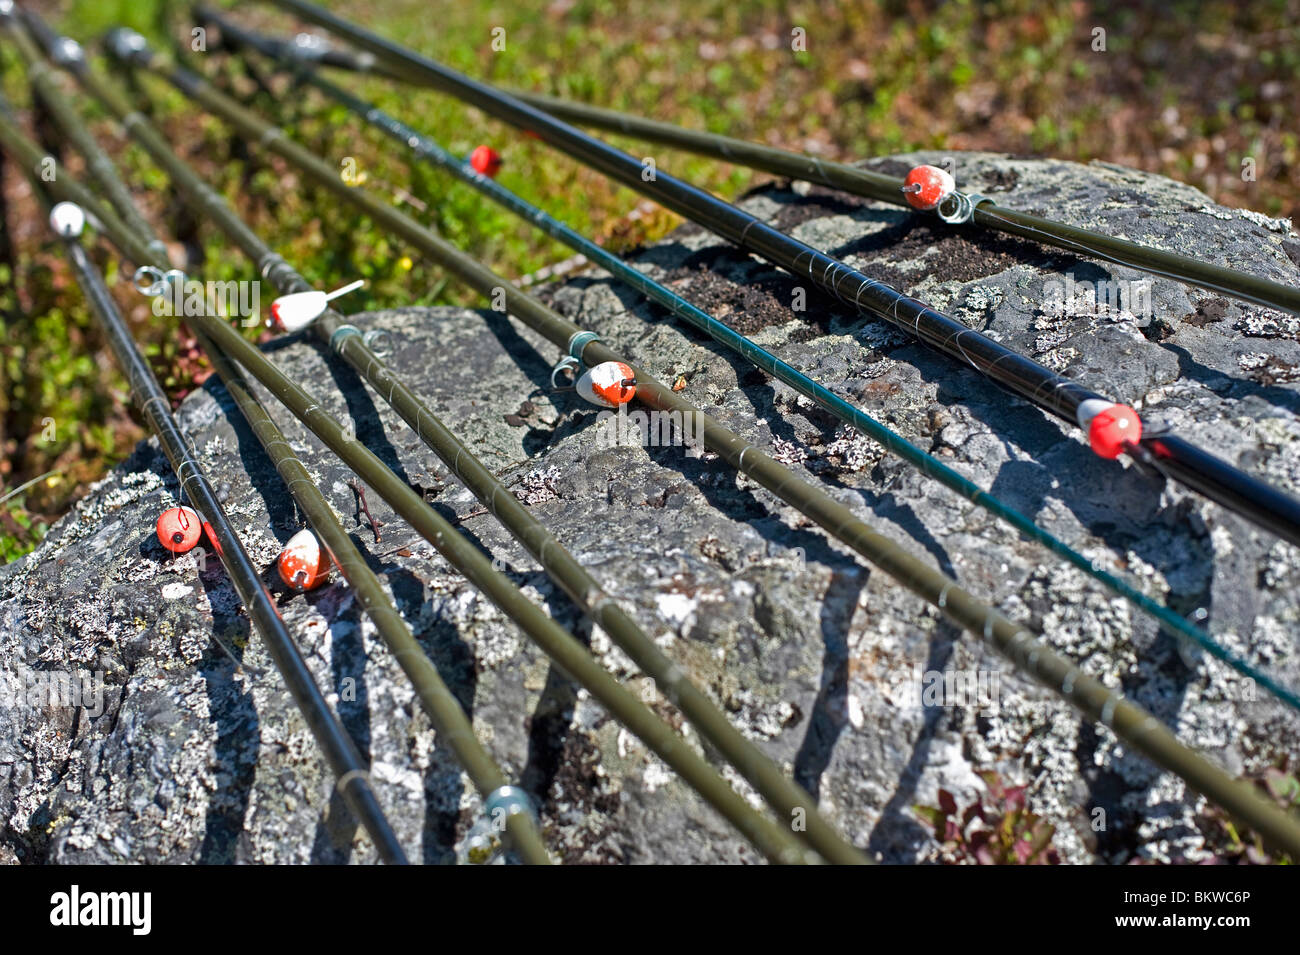 A number of fishingrods lying on rock - Stock Image